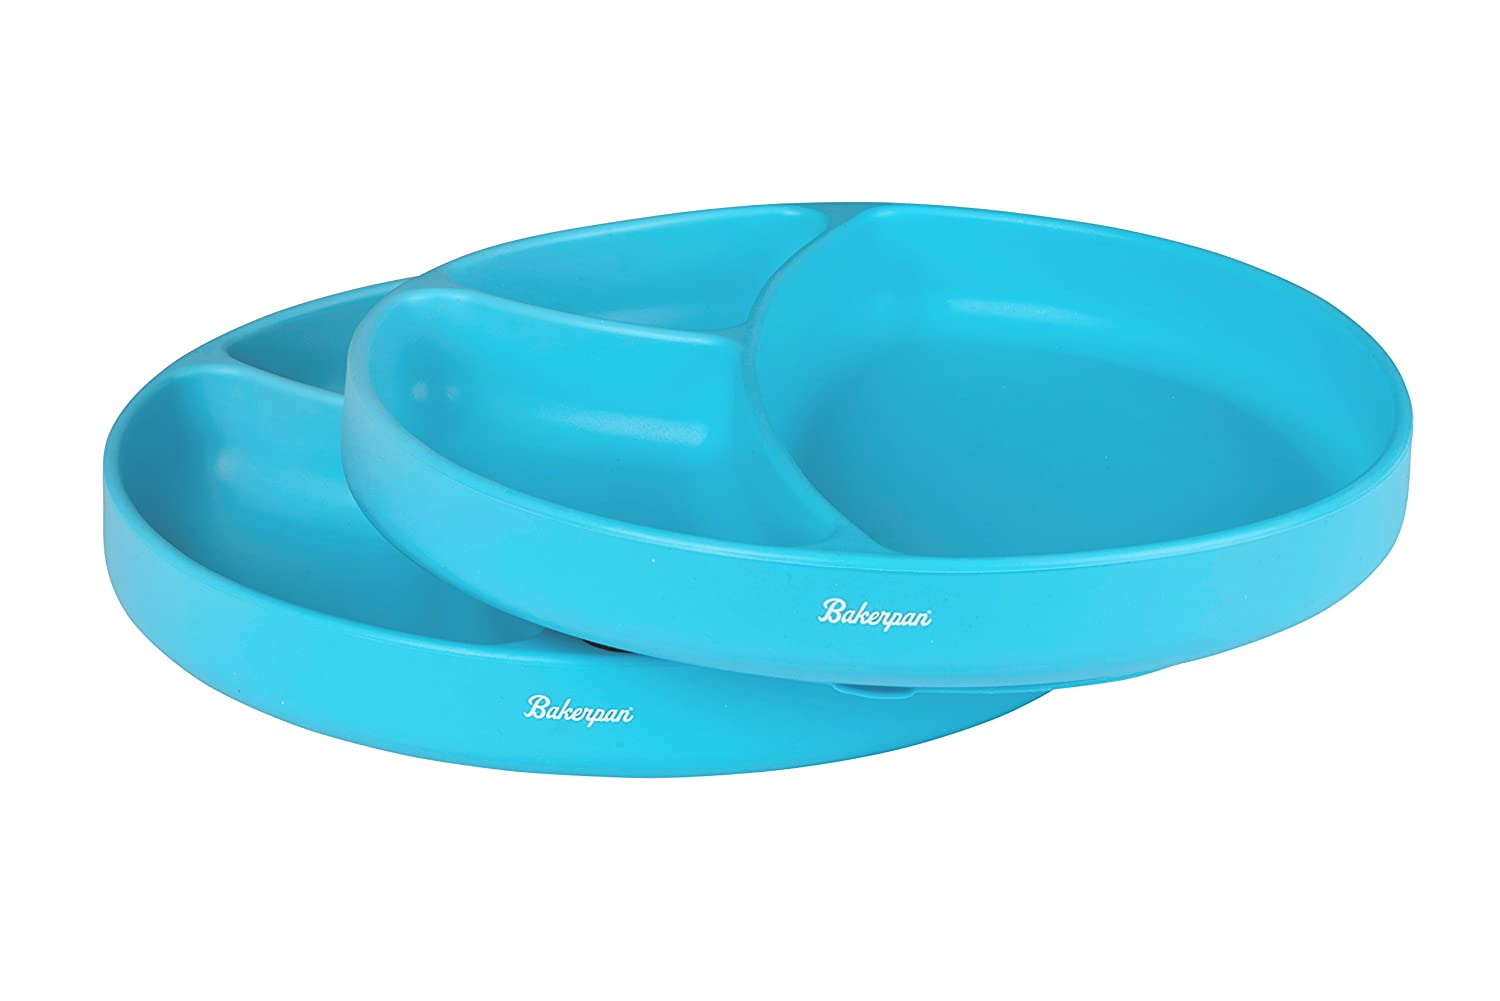 Bakerpan Silicone Toddler Plate with Suction Base, 3 Sections Baby Feeding Plate, Set of 2 (Blue)